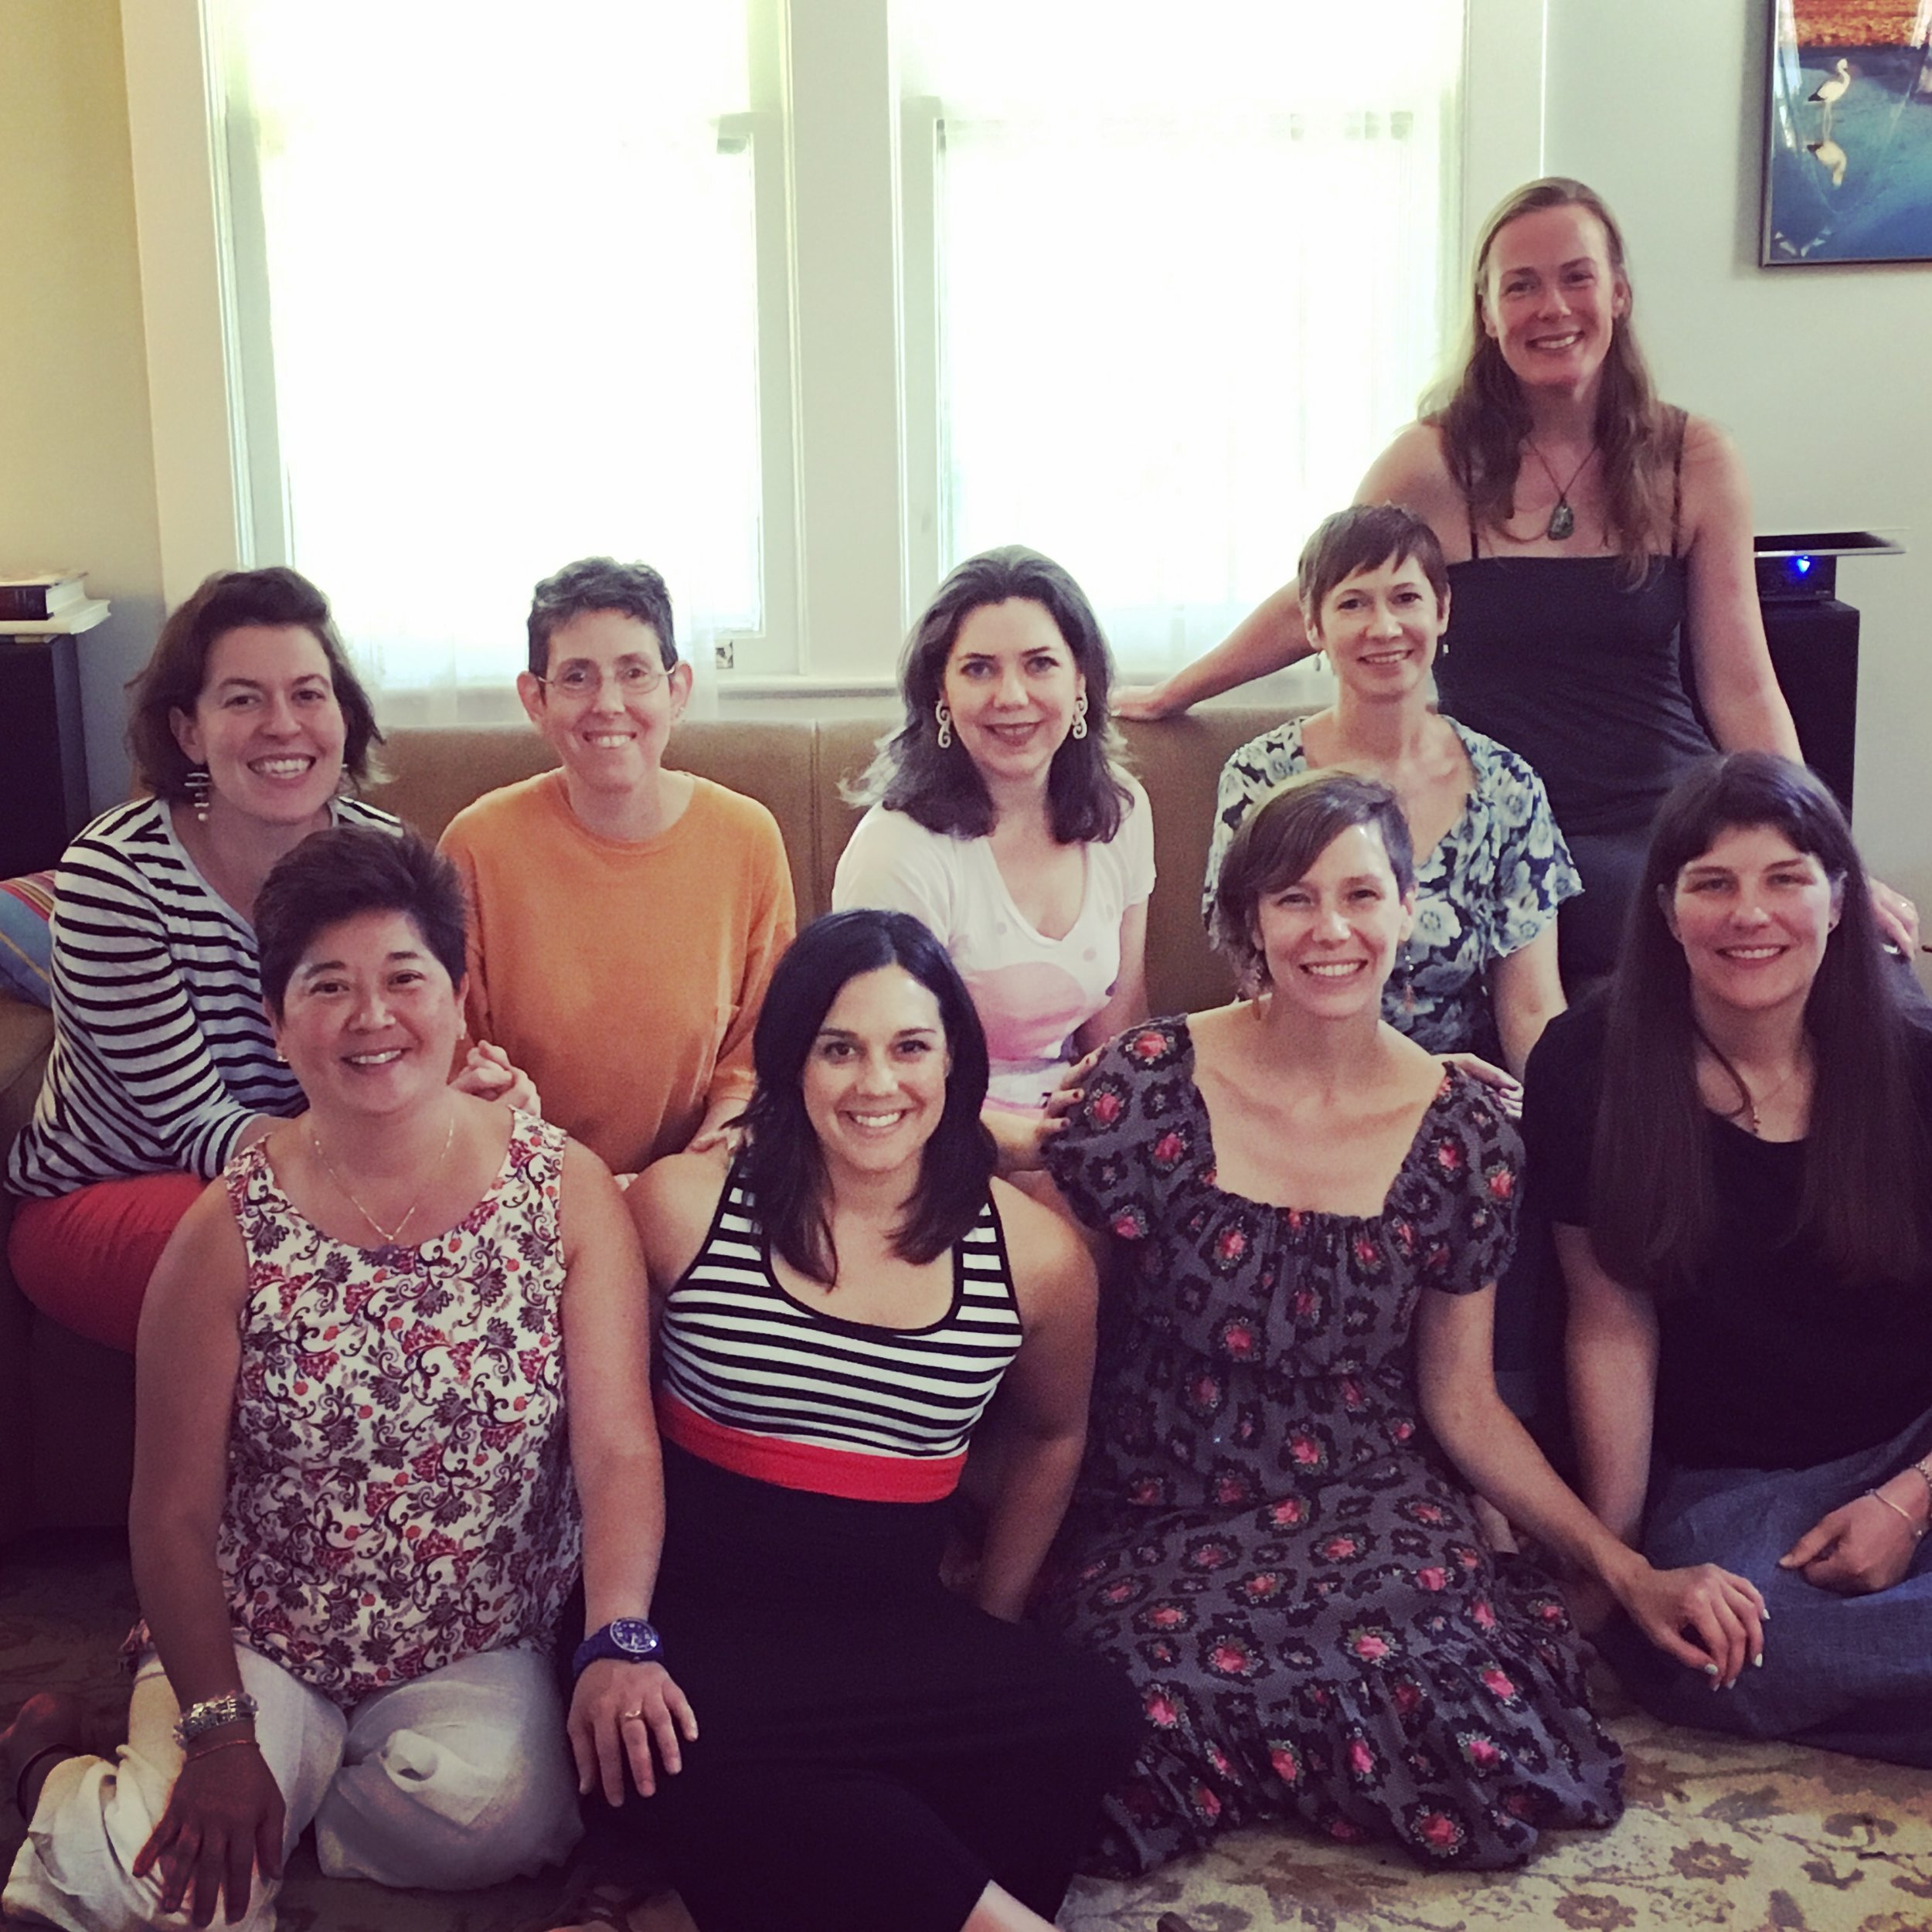 A sweet moment from a brunch reunion with the Self Care 101 Alumni group.